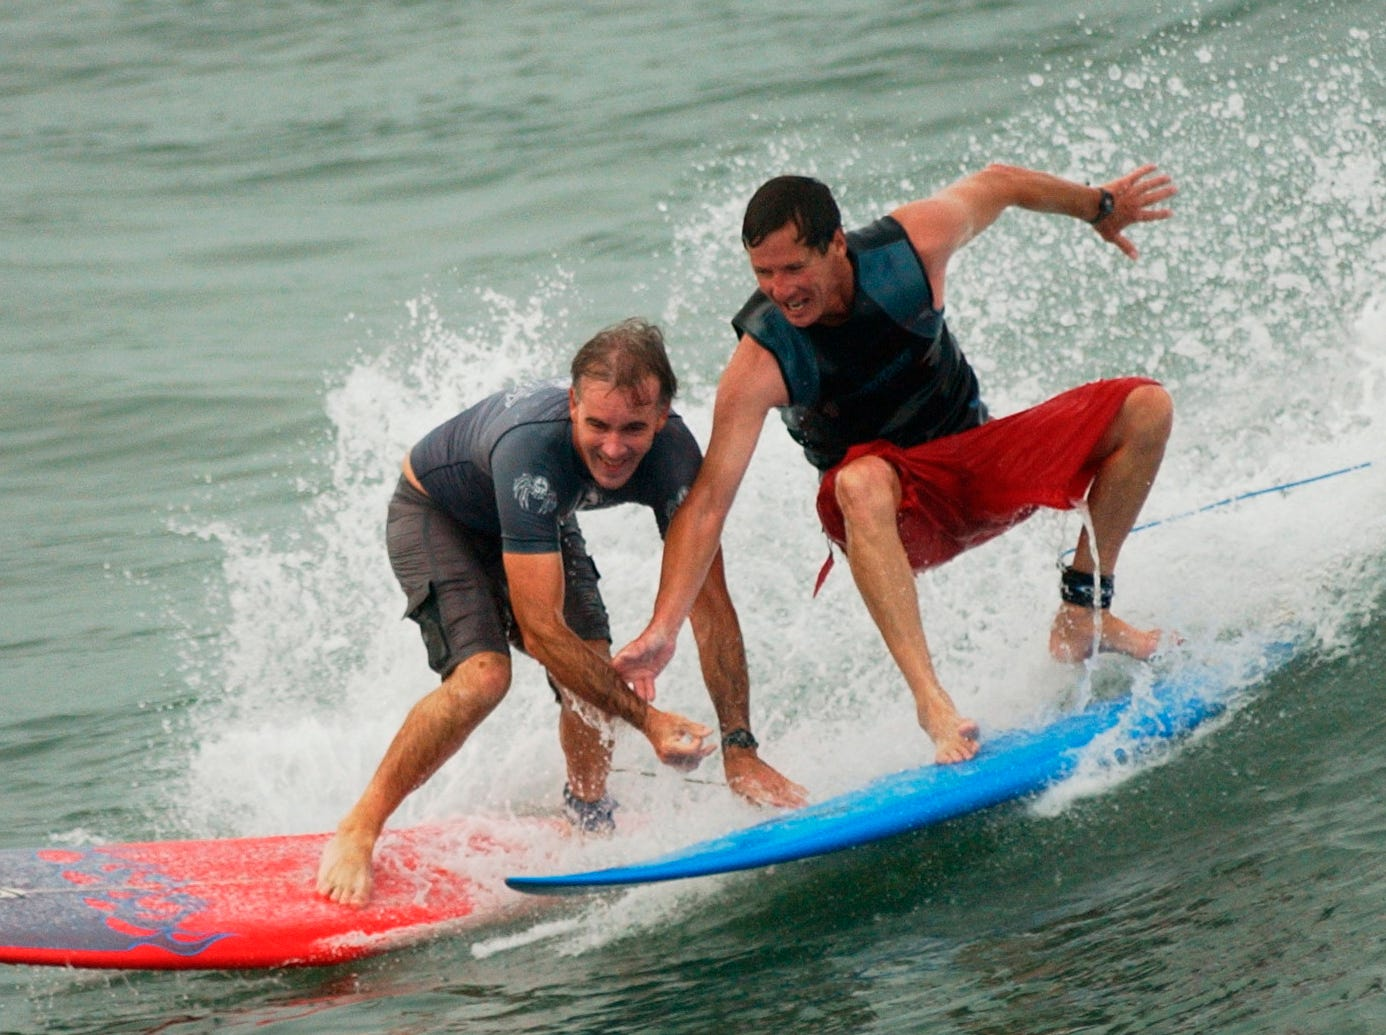 (l-r) Alan Lassiter (left) and Keith Adamson (right), both of Corpus Christi, clown around on a wave  while surfing at Horace Caldwell Pier on Port Aransas Friday, Aug. 15, 2003. Dozens of surfers took advantage of the storm inspired surf throughout the day Friday.